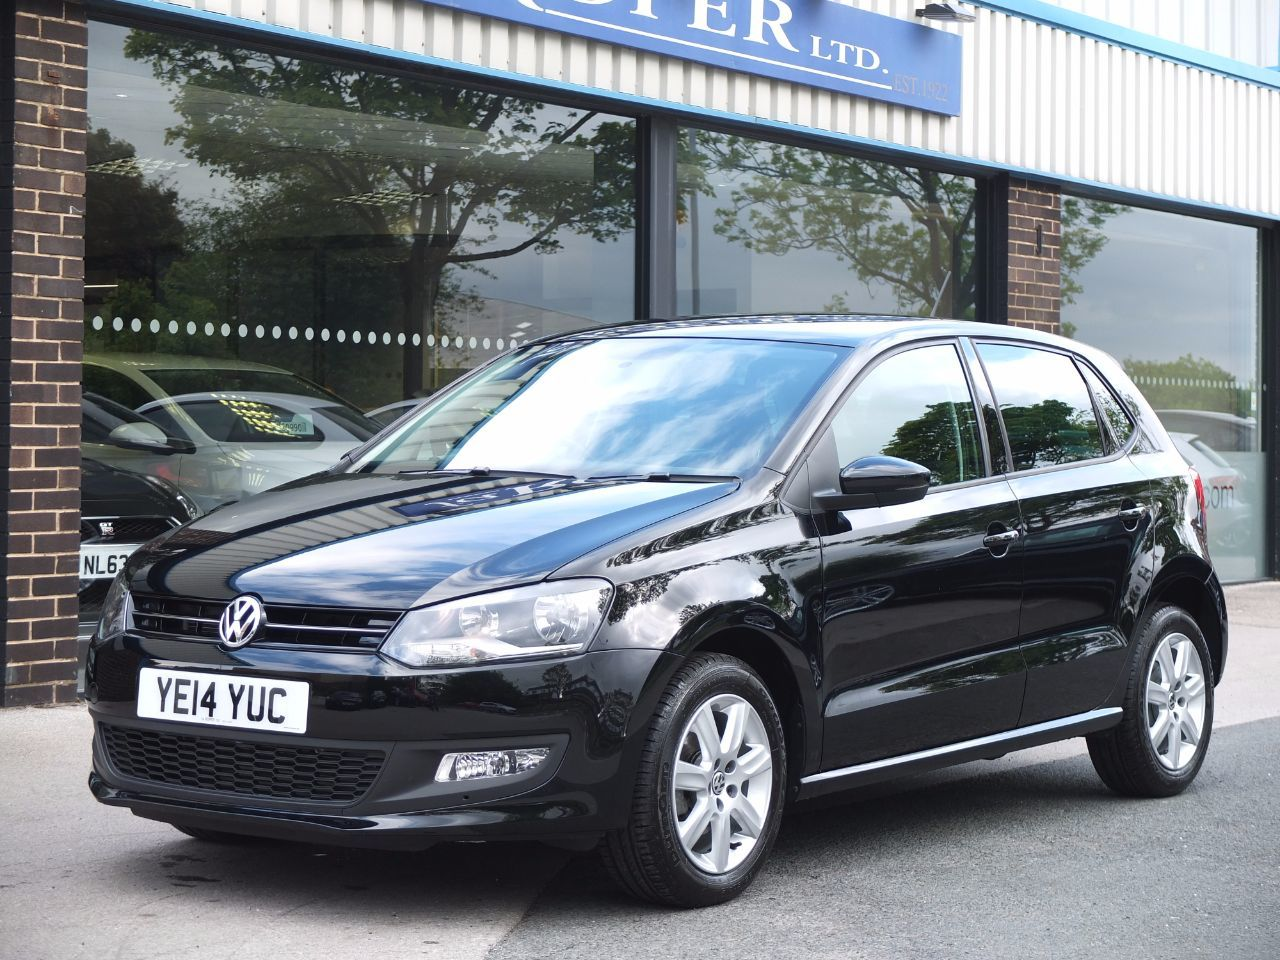 Volkswagen Polo 1.2 TDI Match Edition 5 Door Hatchback Diesel BlackVolkswagen Polo 1.2 TDI Match Edition 5 Door Hatchback Diesel Black at fa Roper Ltd Bradford